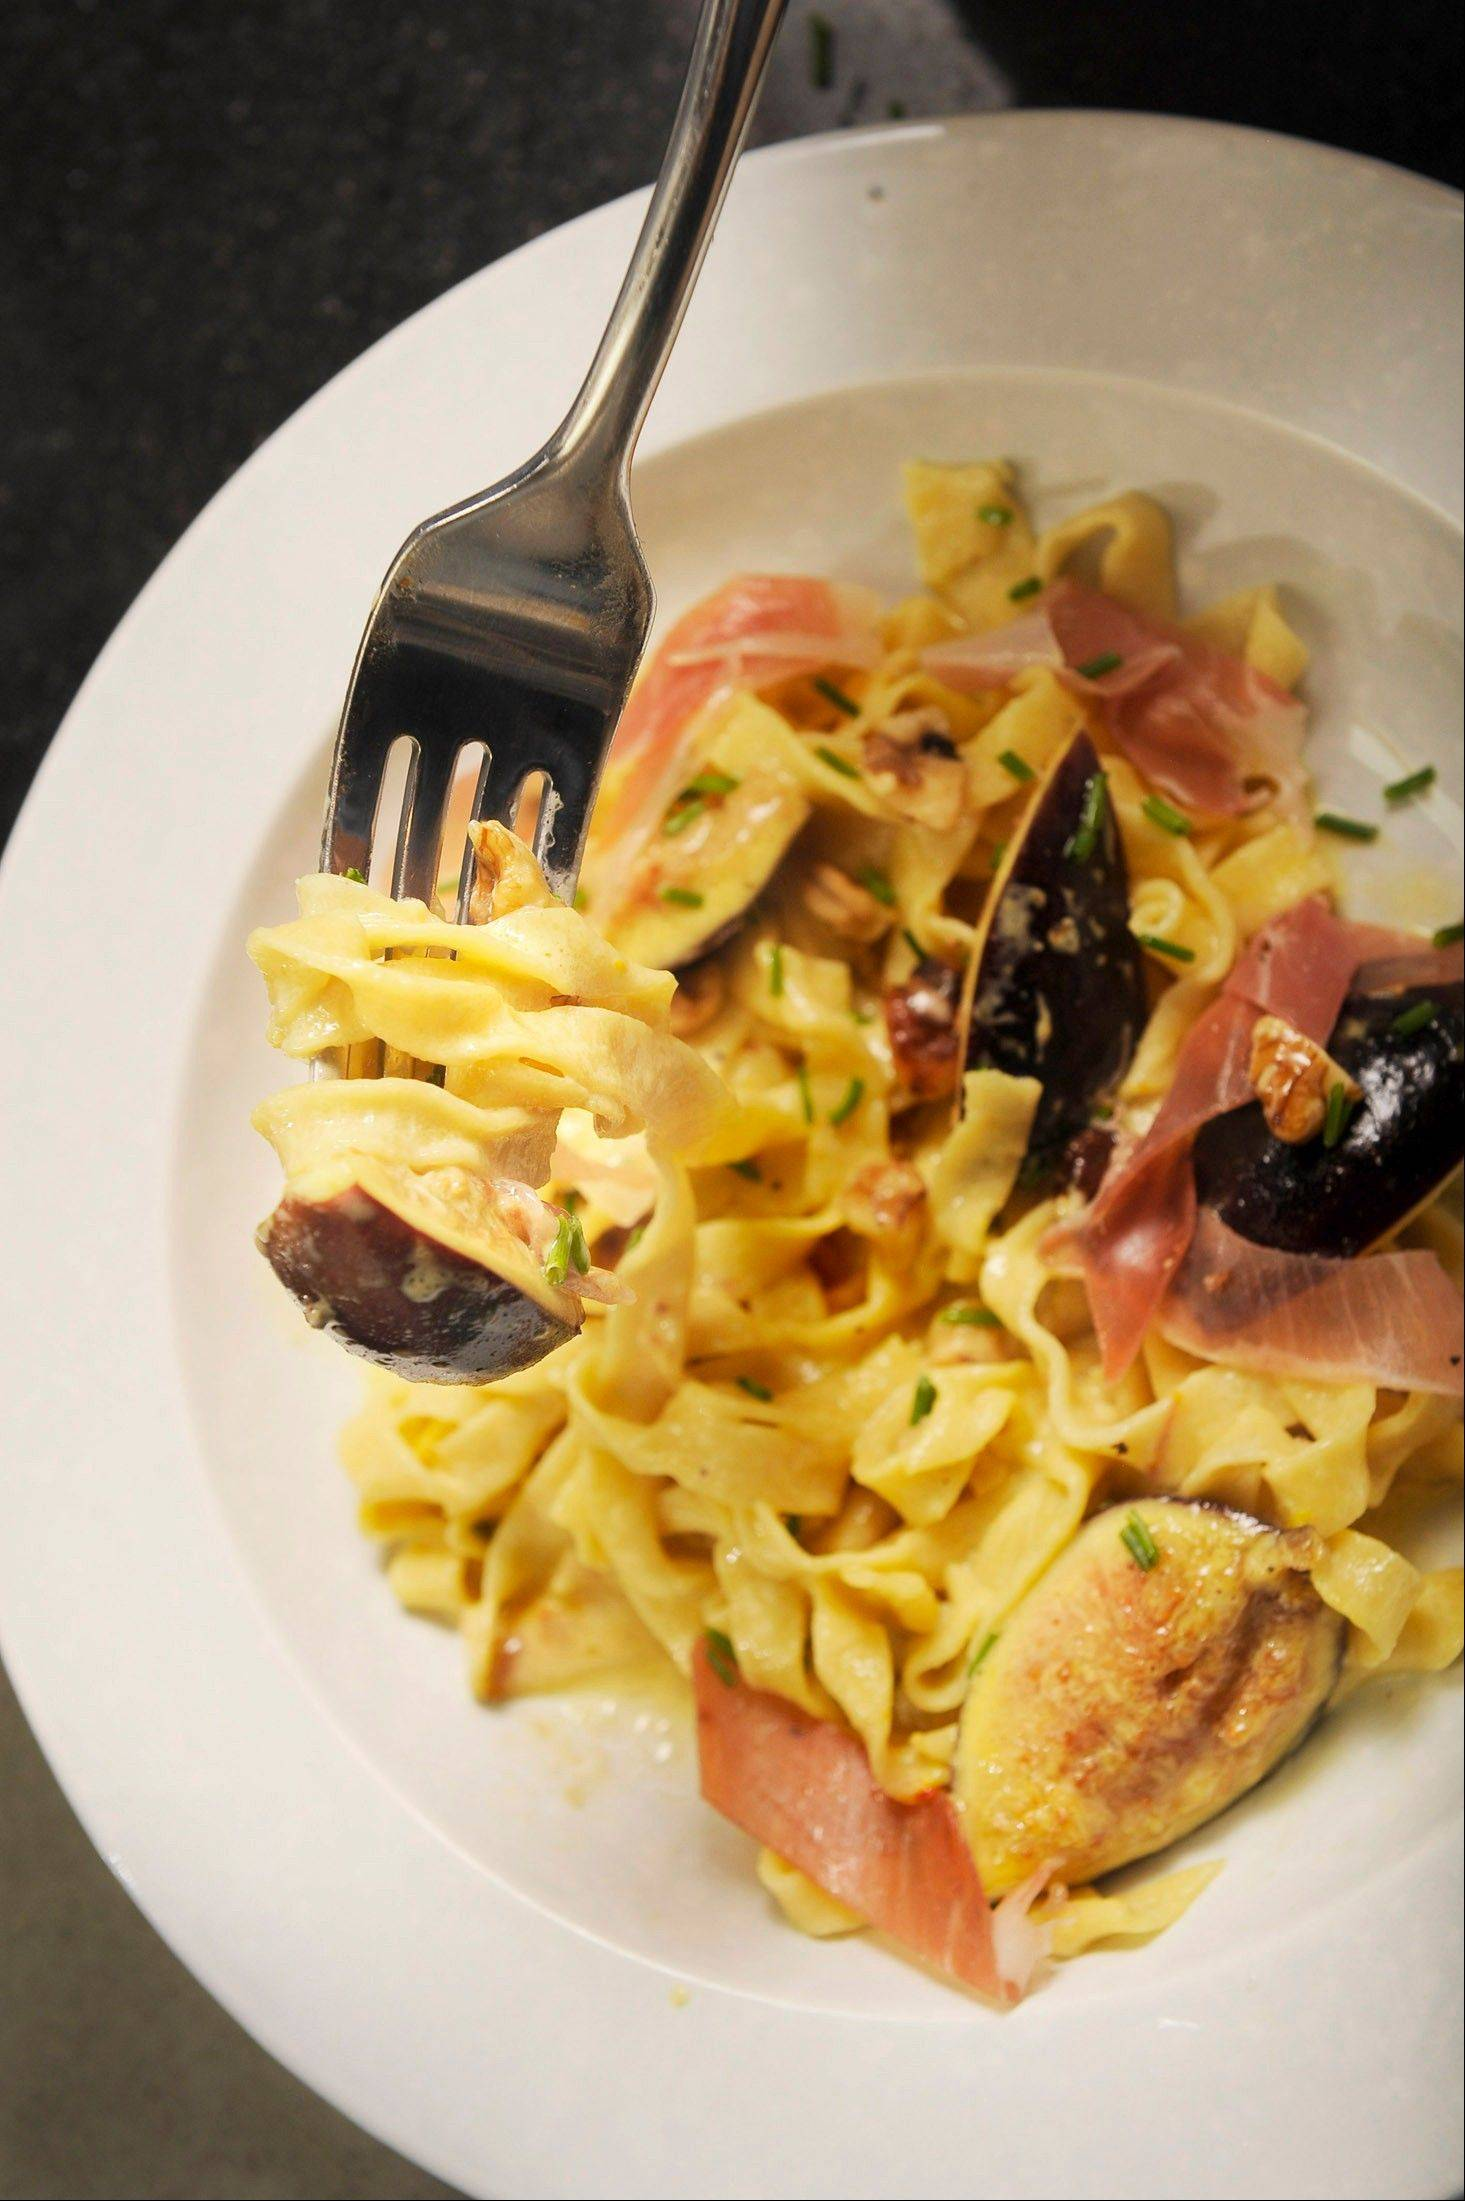 Hand-cranked saffron fettuccine partners with figs and a creamy cambozola sauce for a perfect fall dish.